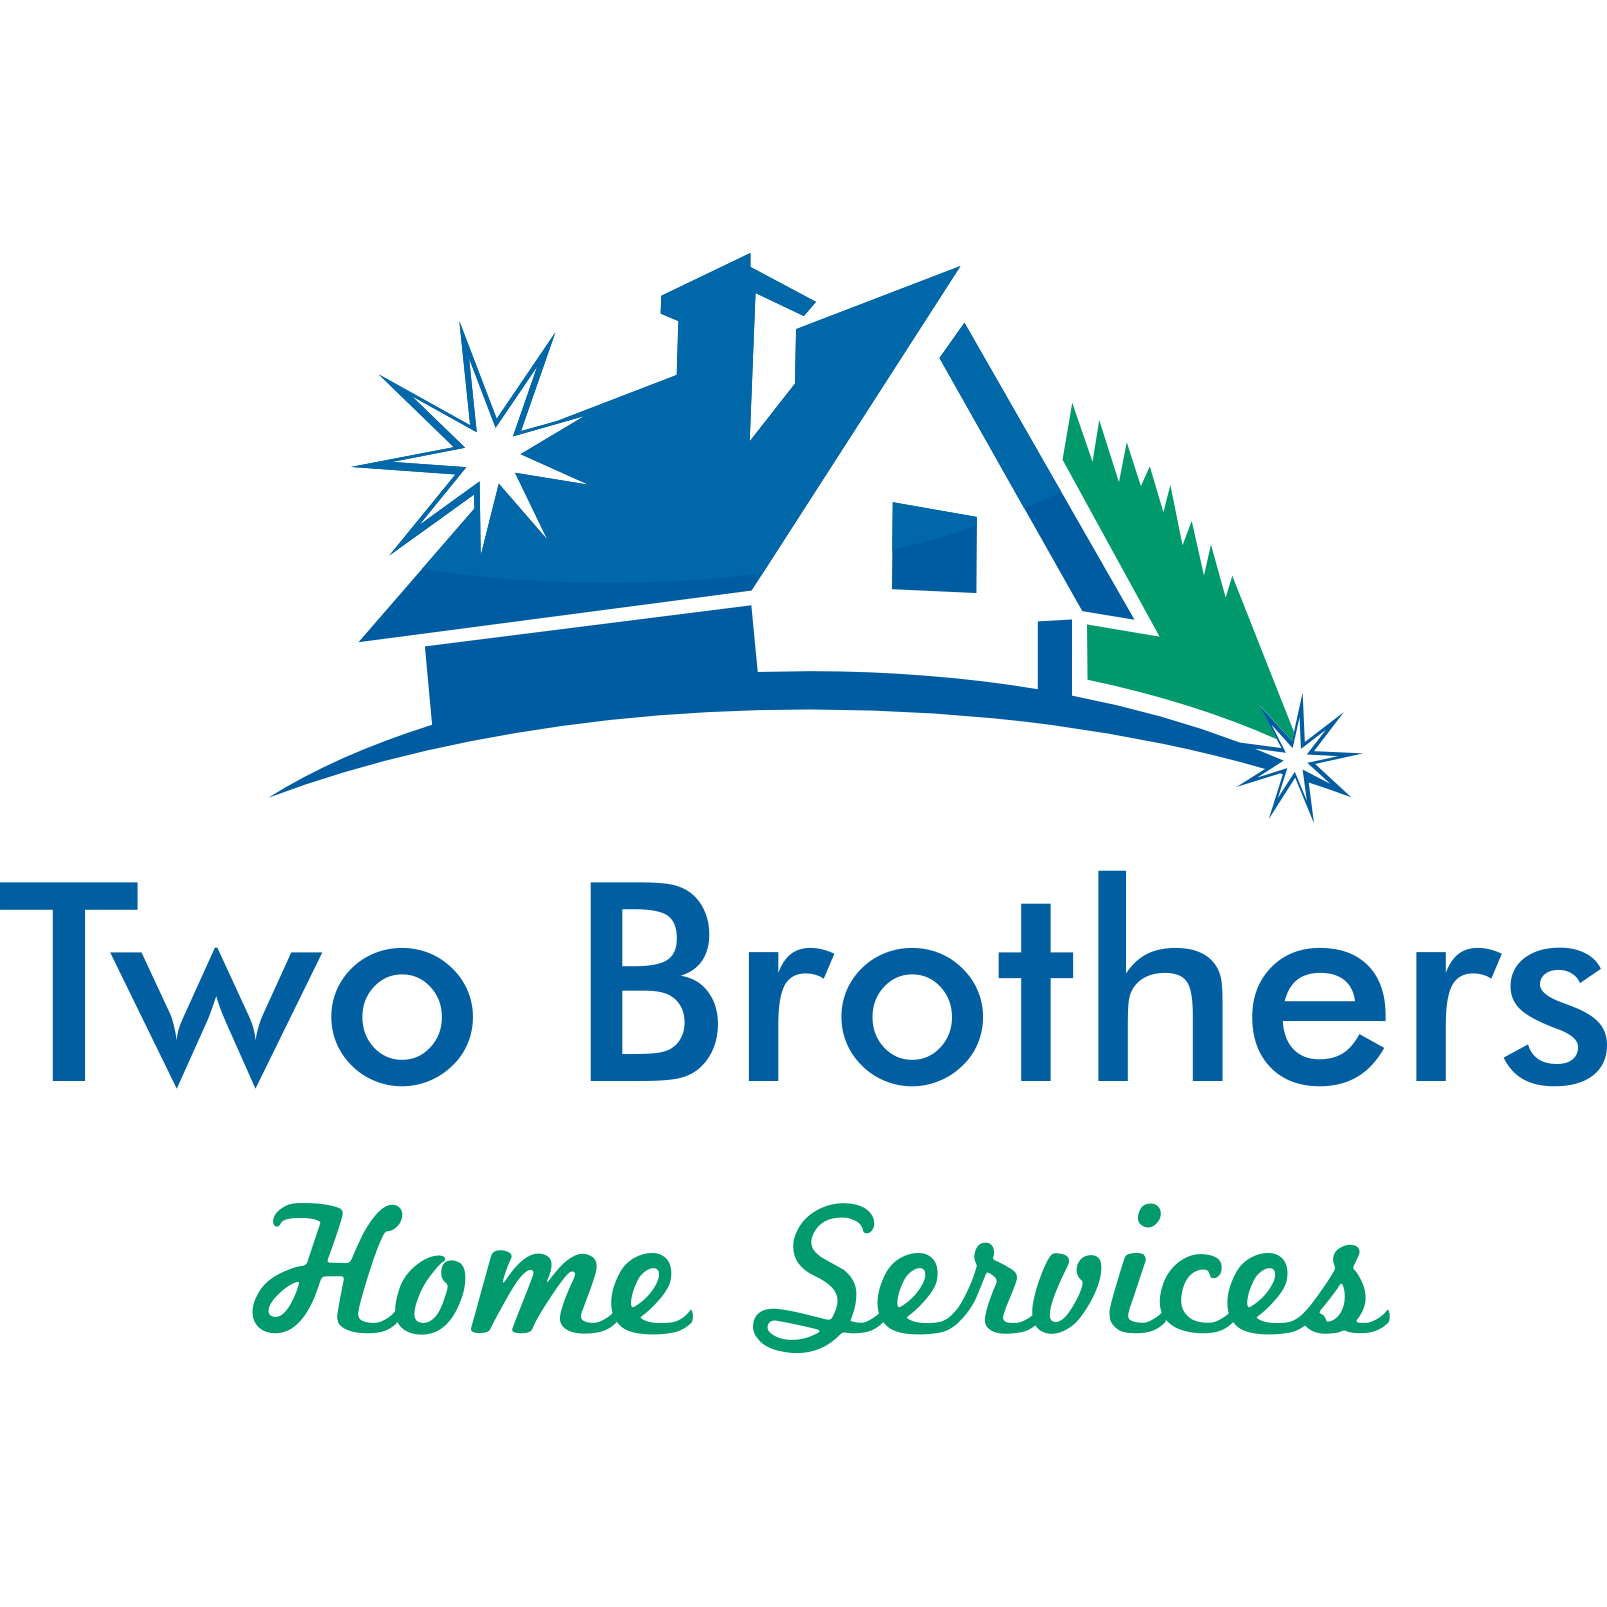 Two Brothers Home Services